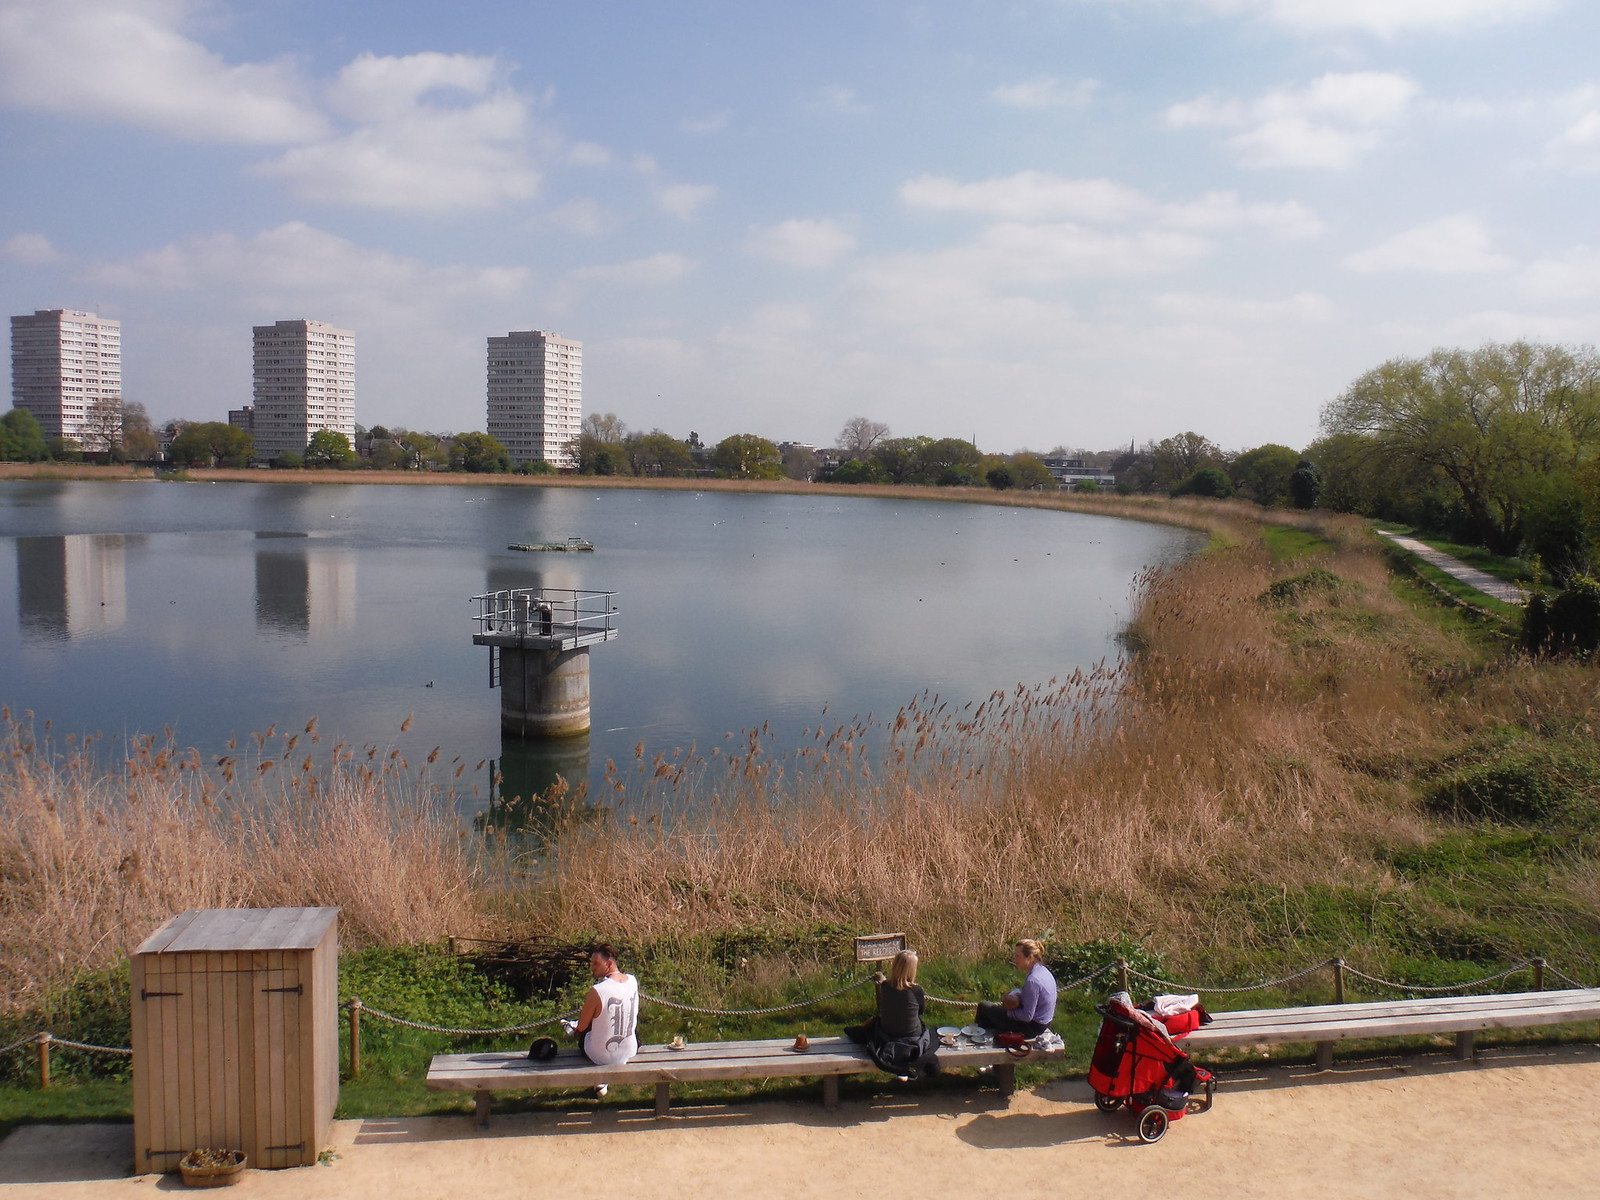 View from roof of Coal House (I), Woodberry Wetlands SWC Short Walk 26 - Woodberry Wetlands (Stoke Newington Reservoirs)